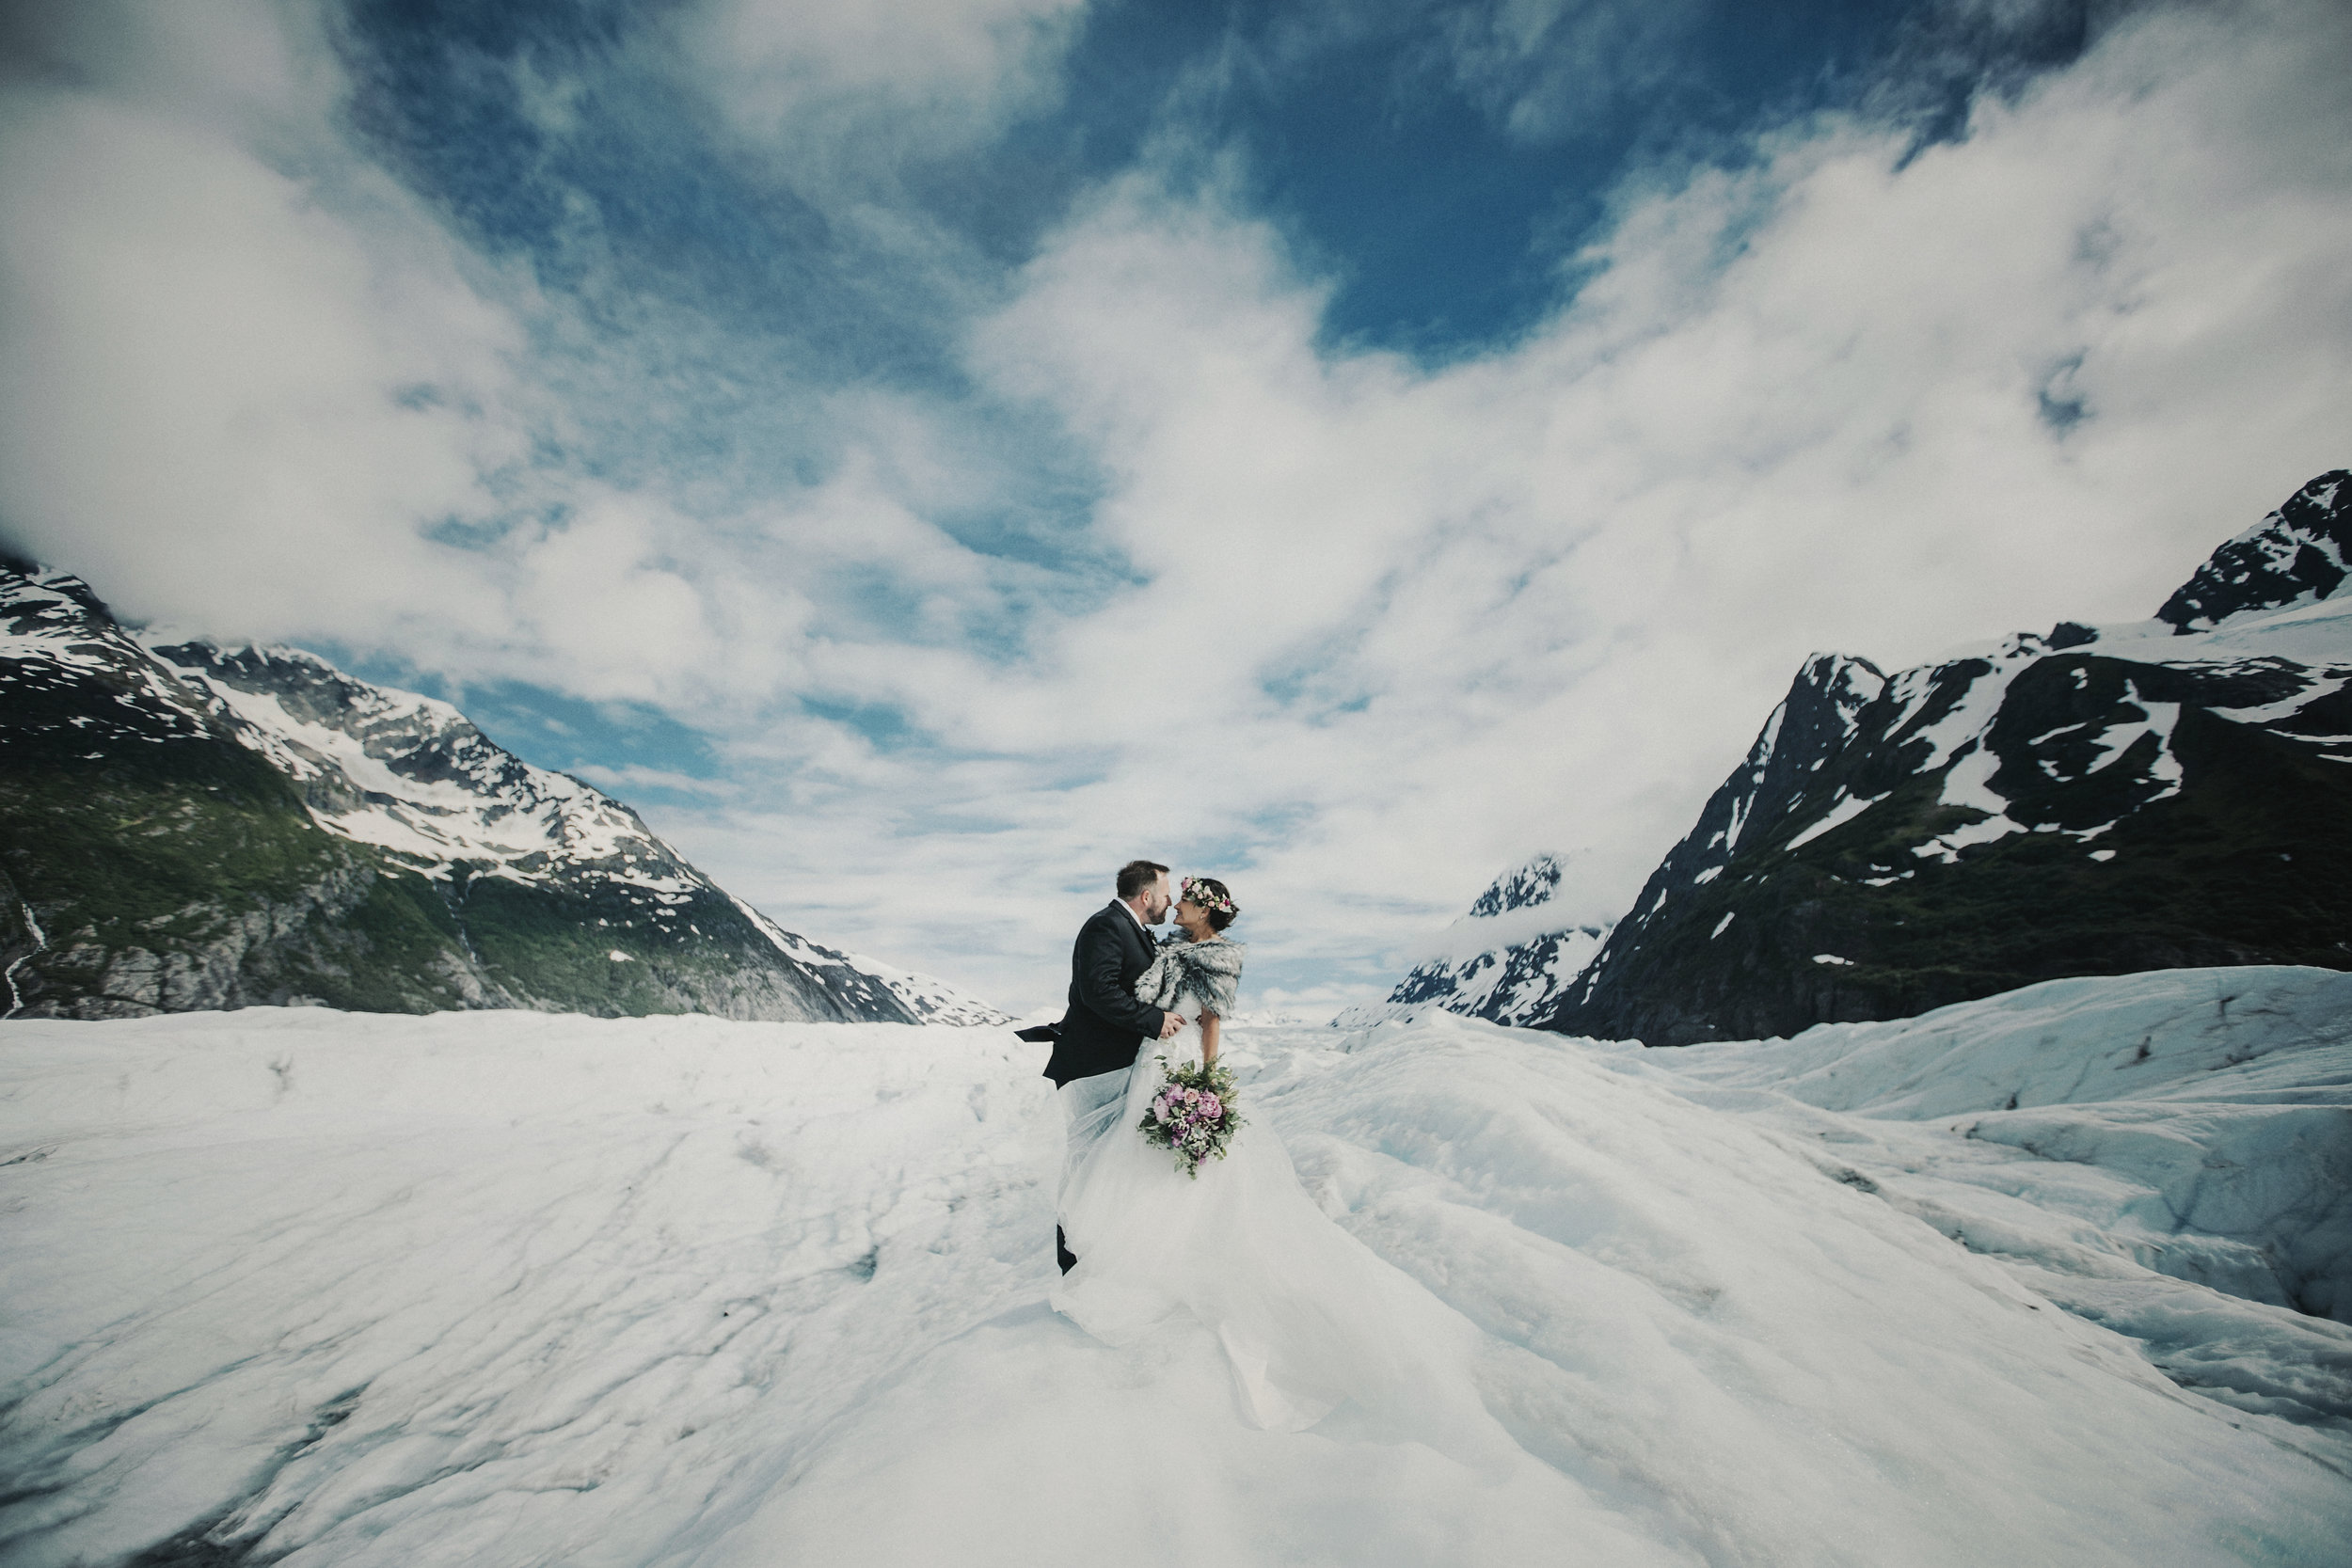 Elope to Alaska - Alaska Destination Weddings Glacier Elopement Package